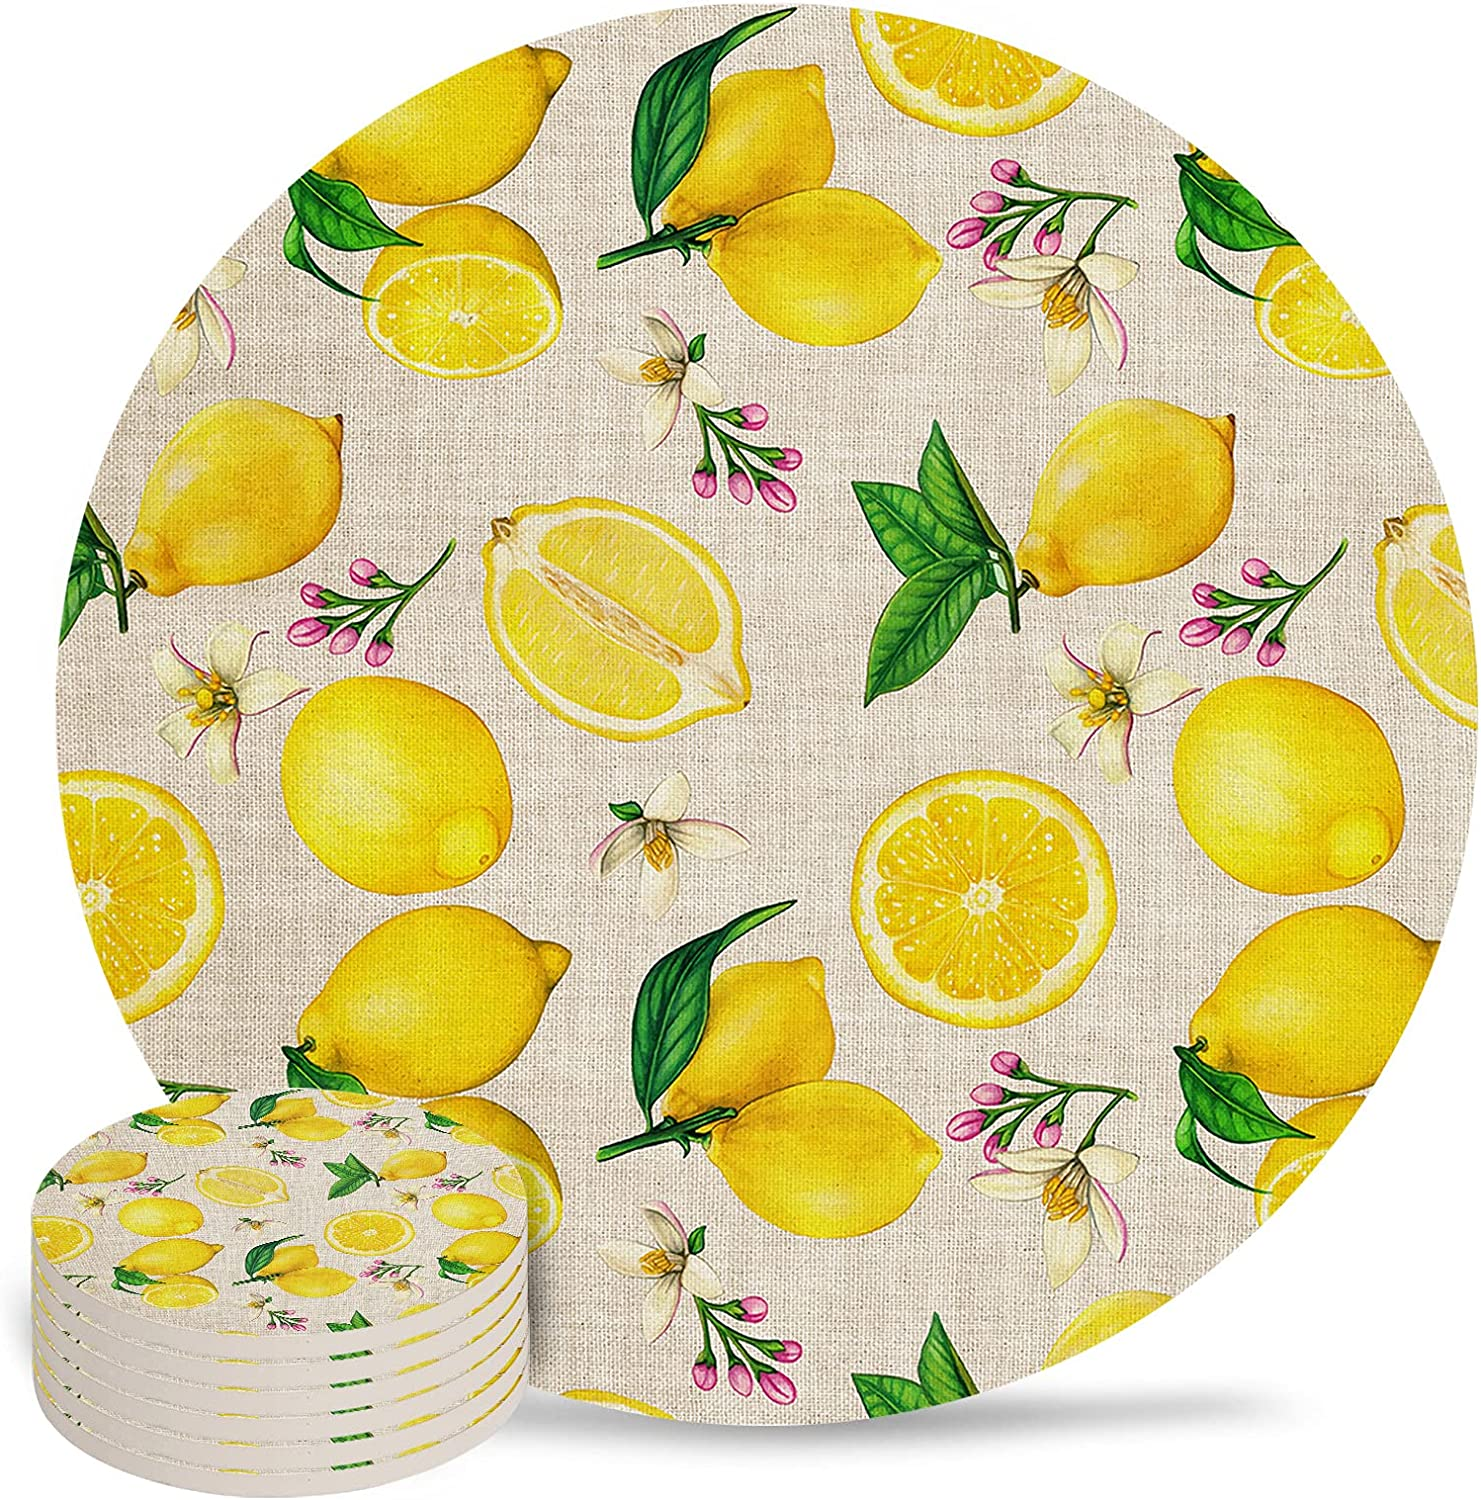 Max 49% OFF Tropical Fruits Popular shop is the lowest price challenge Lemon on Retro Krafy A Drink Paper for Coasters